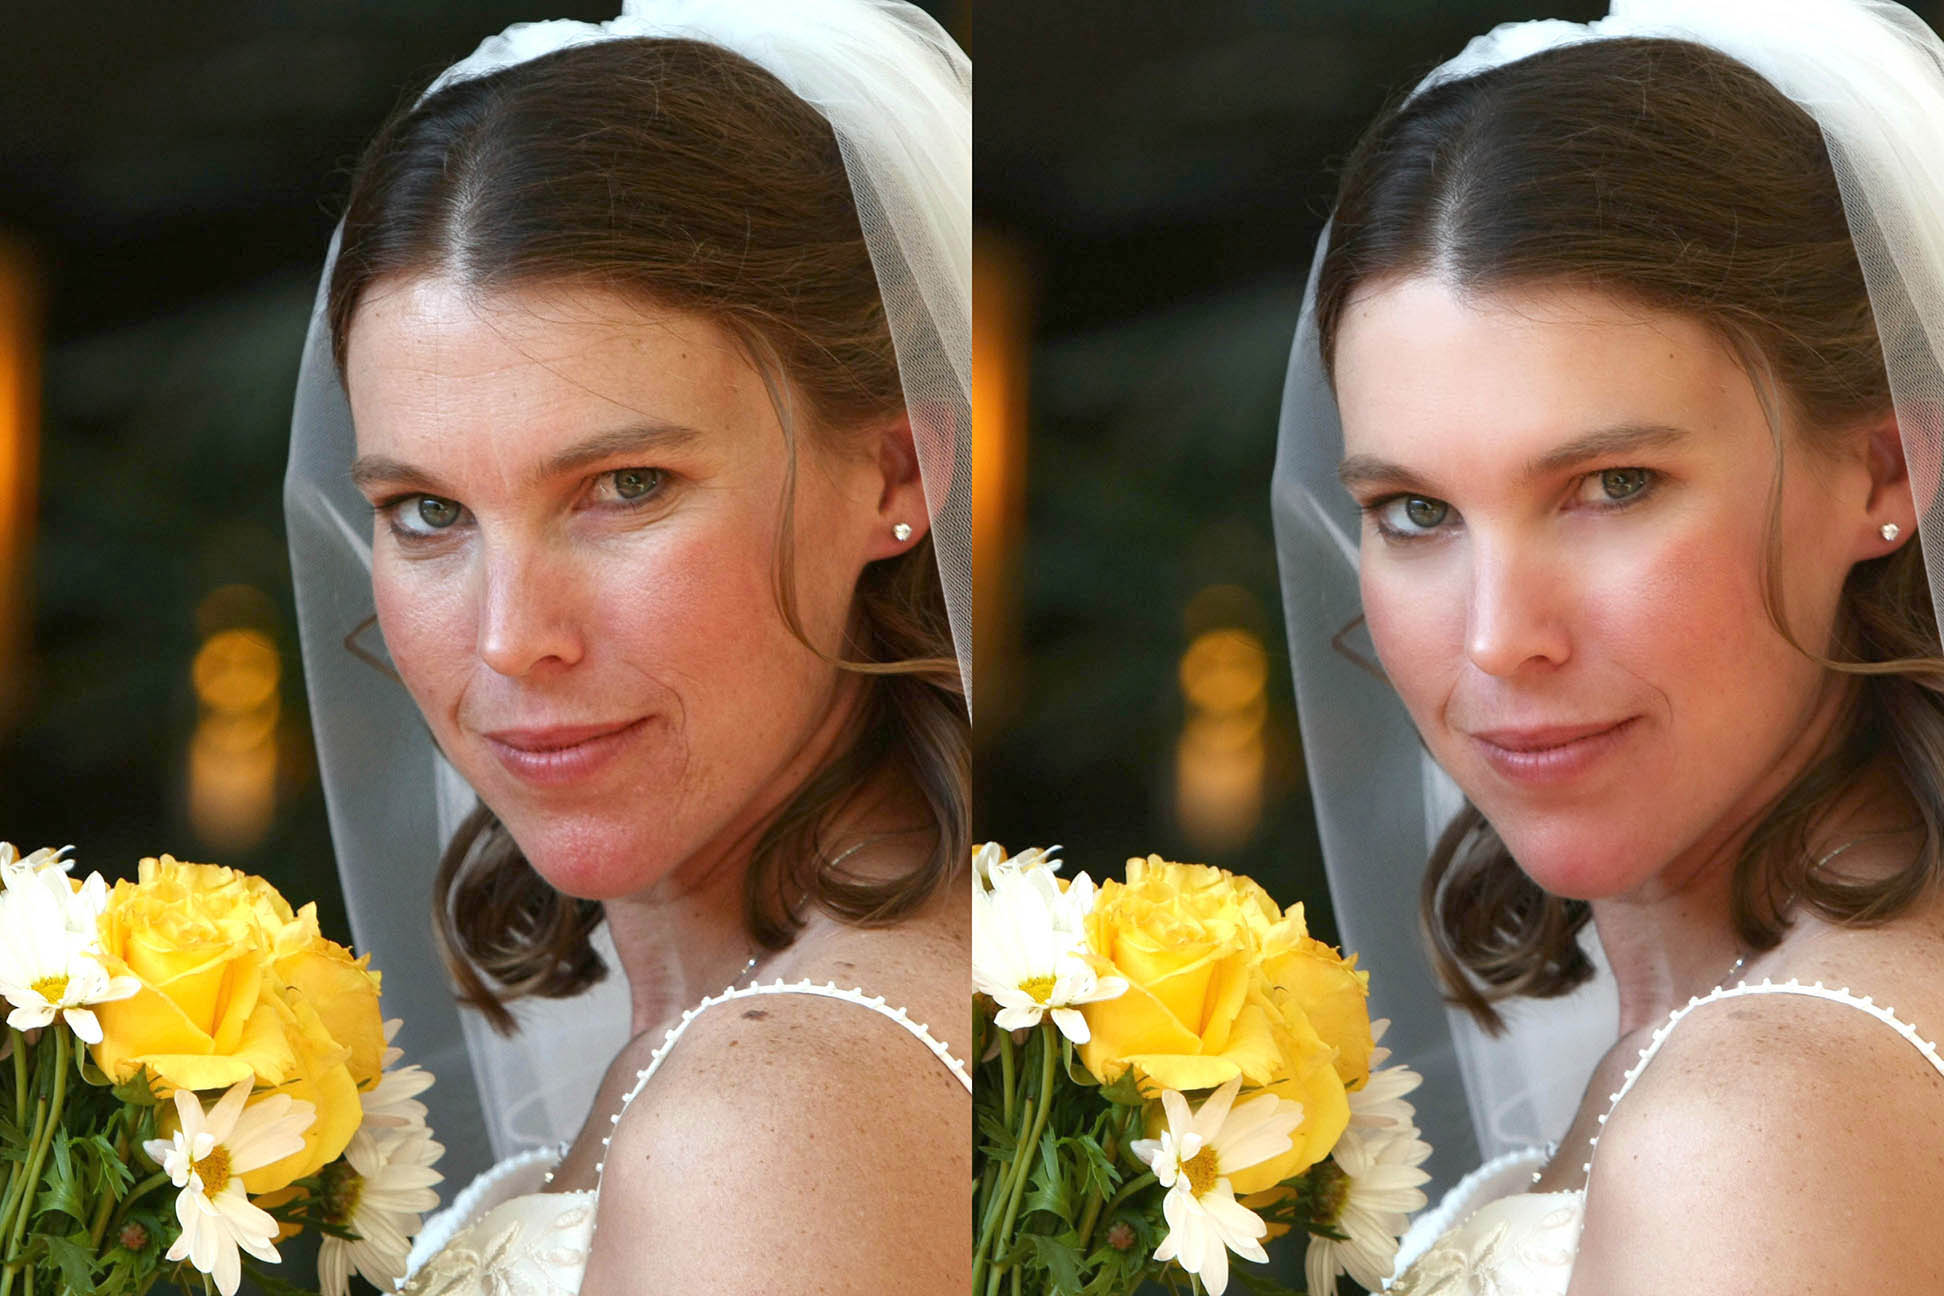 before and after retouching of a bride photo